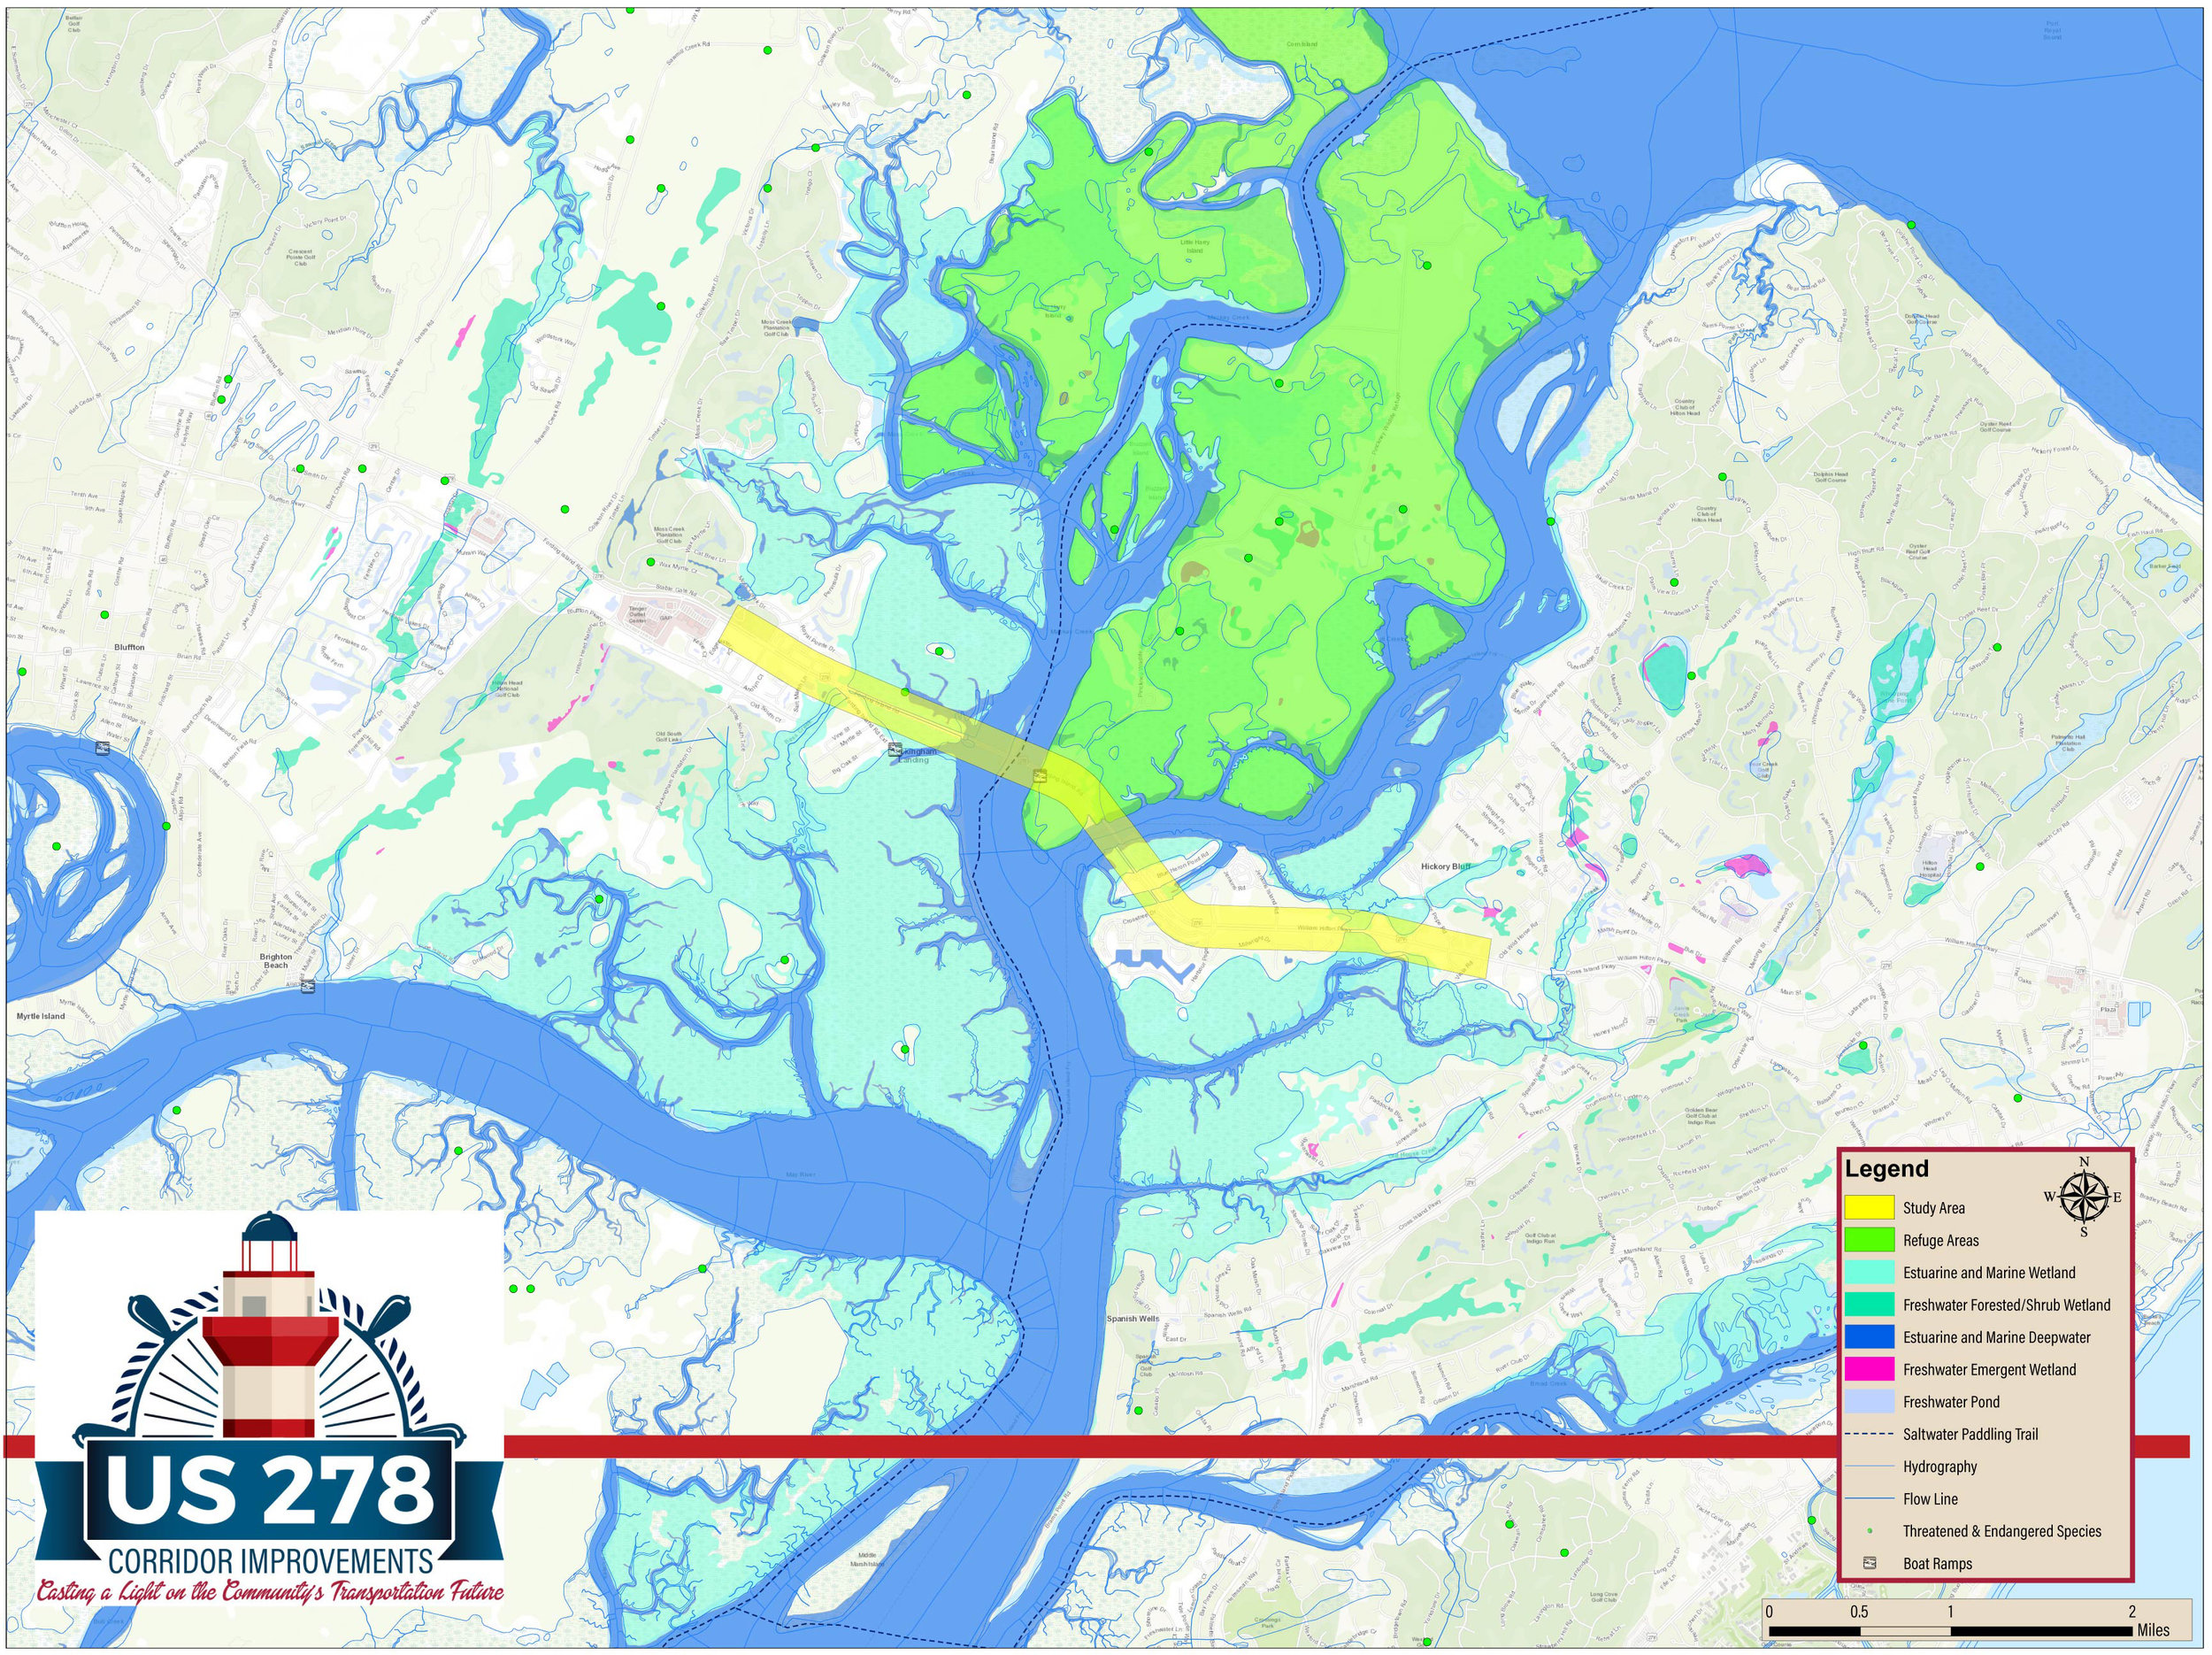 Environmental Basemap - The Environmental Basemaps shows the environmental features adjacent to the US 278 corridor. It shows features such as wildlife refuge areas, wetland types, saltwater paddling trails, hydrography, threatened and endangered species, and boat ramps.